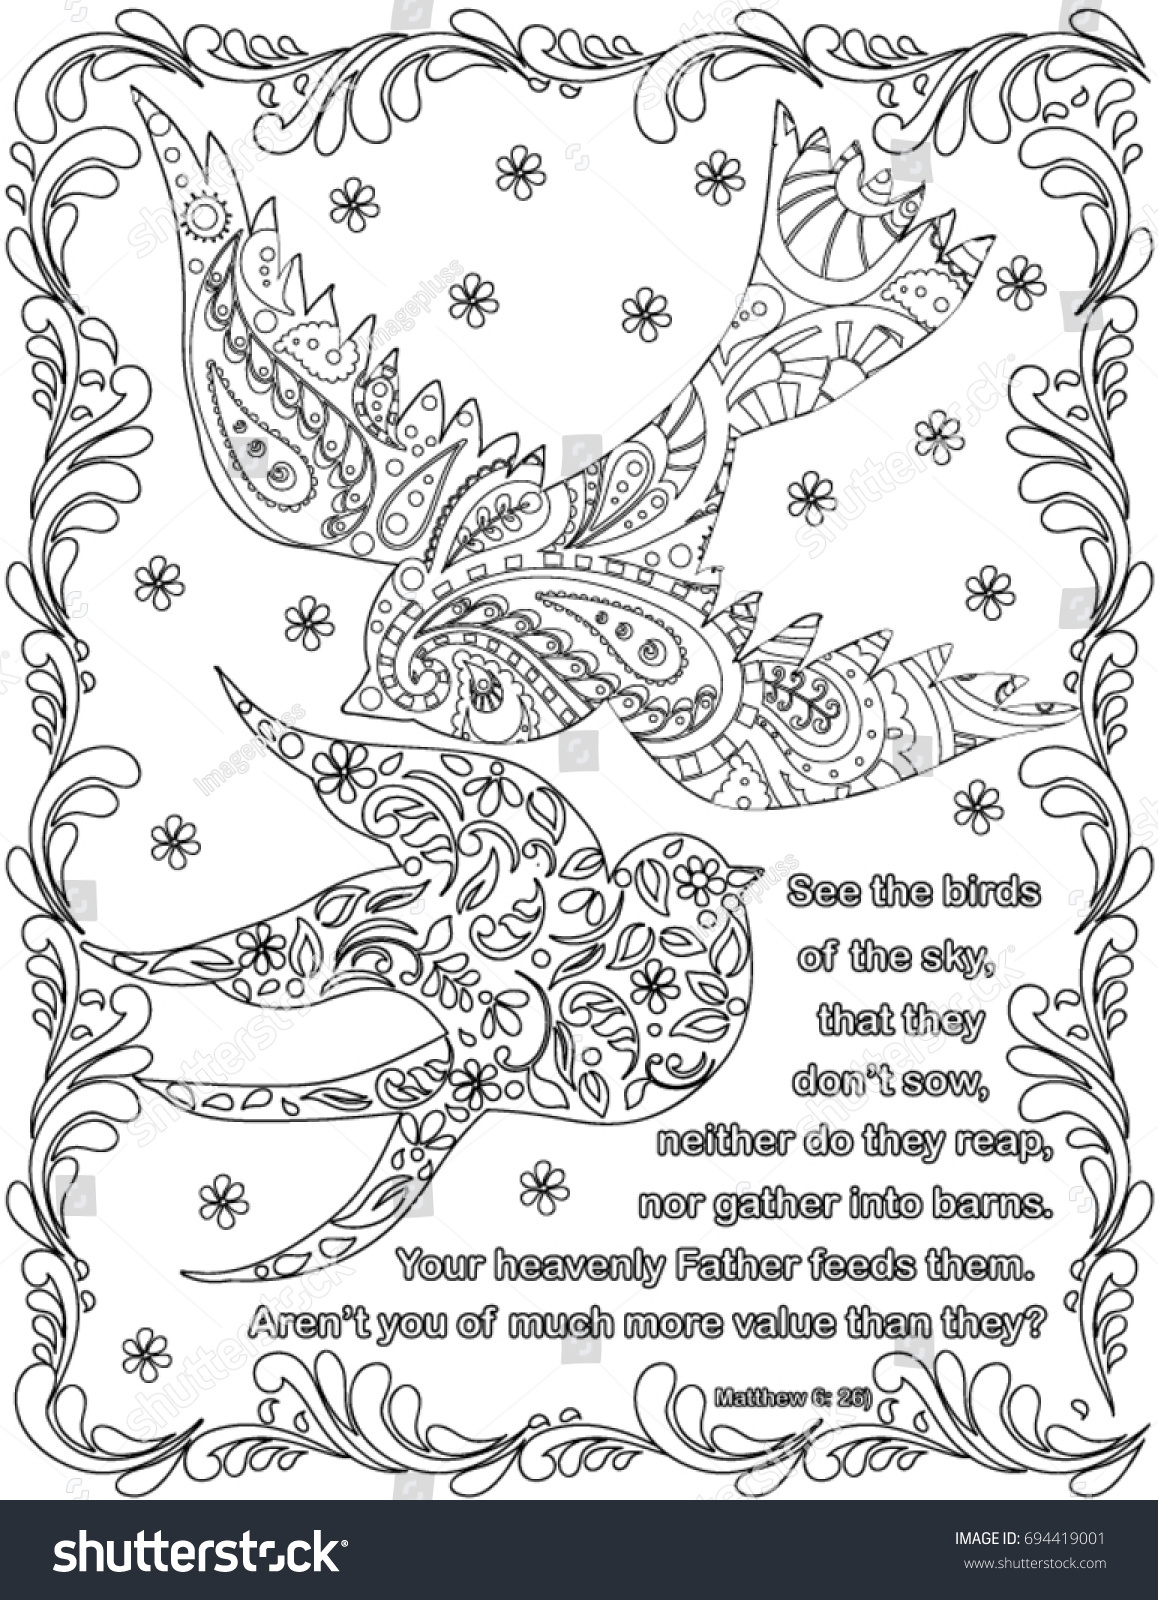 bible verses coloring book page stock vector 694419001 shutterstock